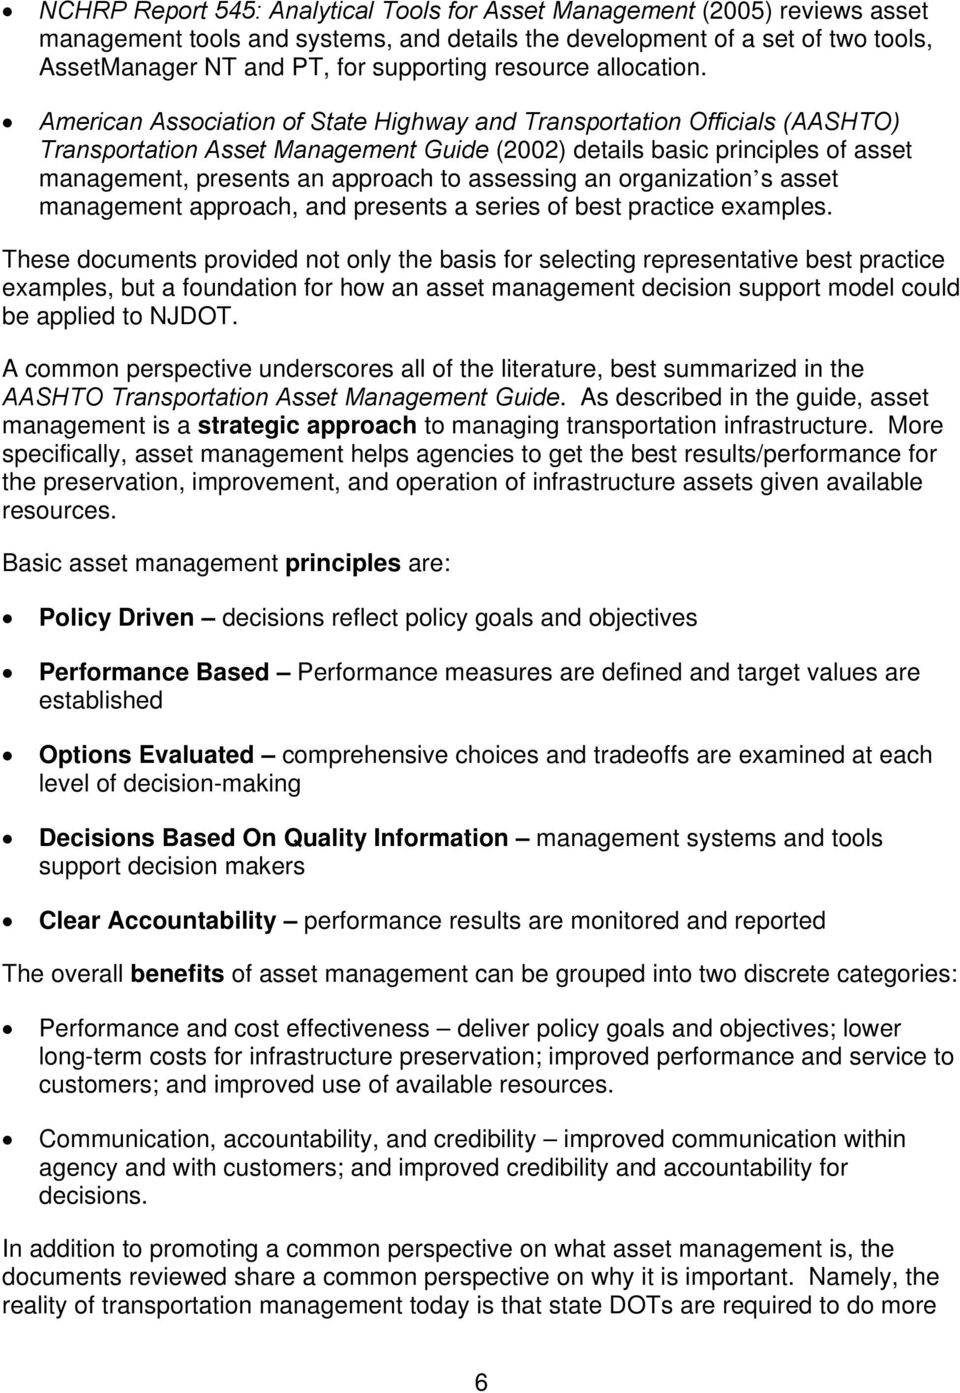 American Association of State Highway and Transportation Officials (AASHTO) Transportation Asset Management Guide (2002) details basic principles of asset management, presents an approach to